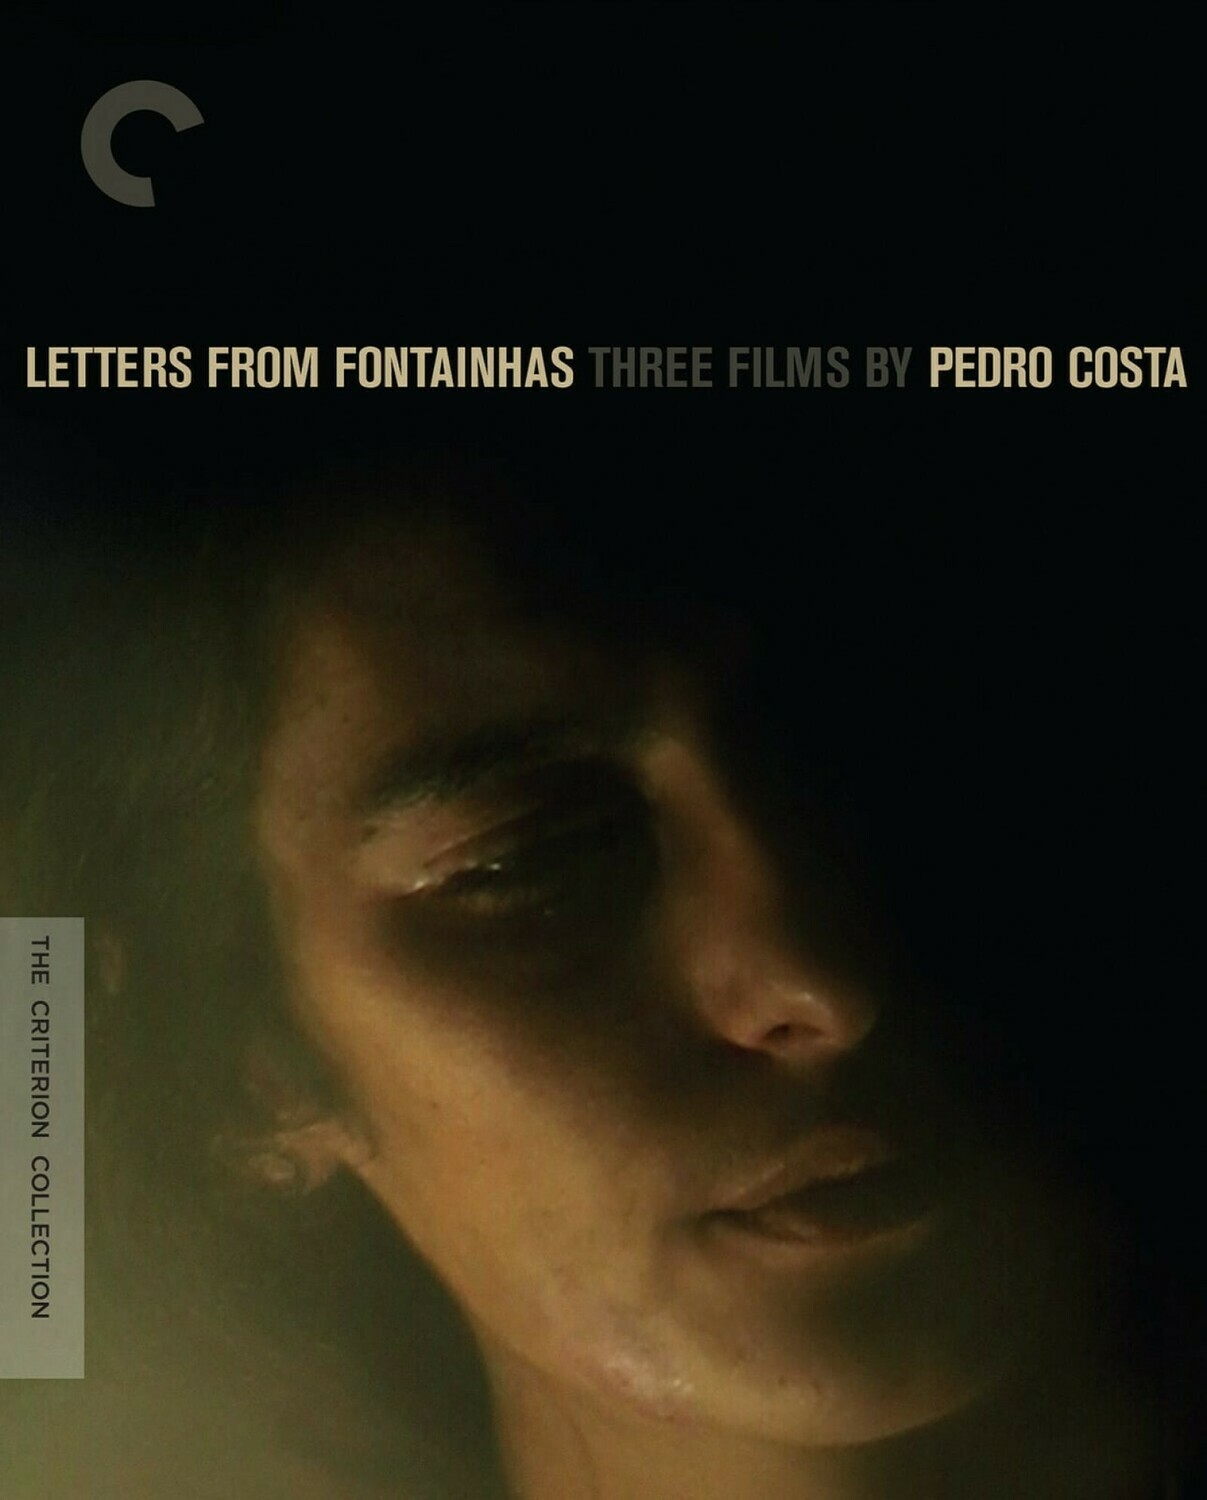 LETTERS FROM FONTAINHAS: 3 FILMS BY PEDRO COSTA - DVD